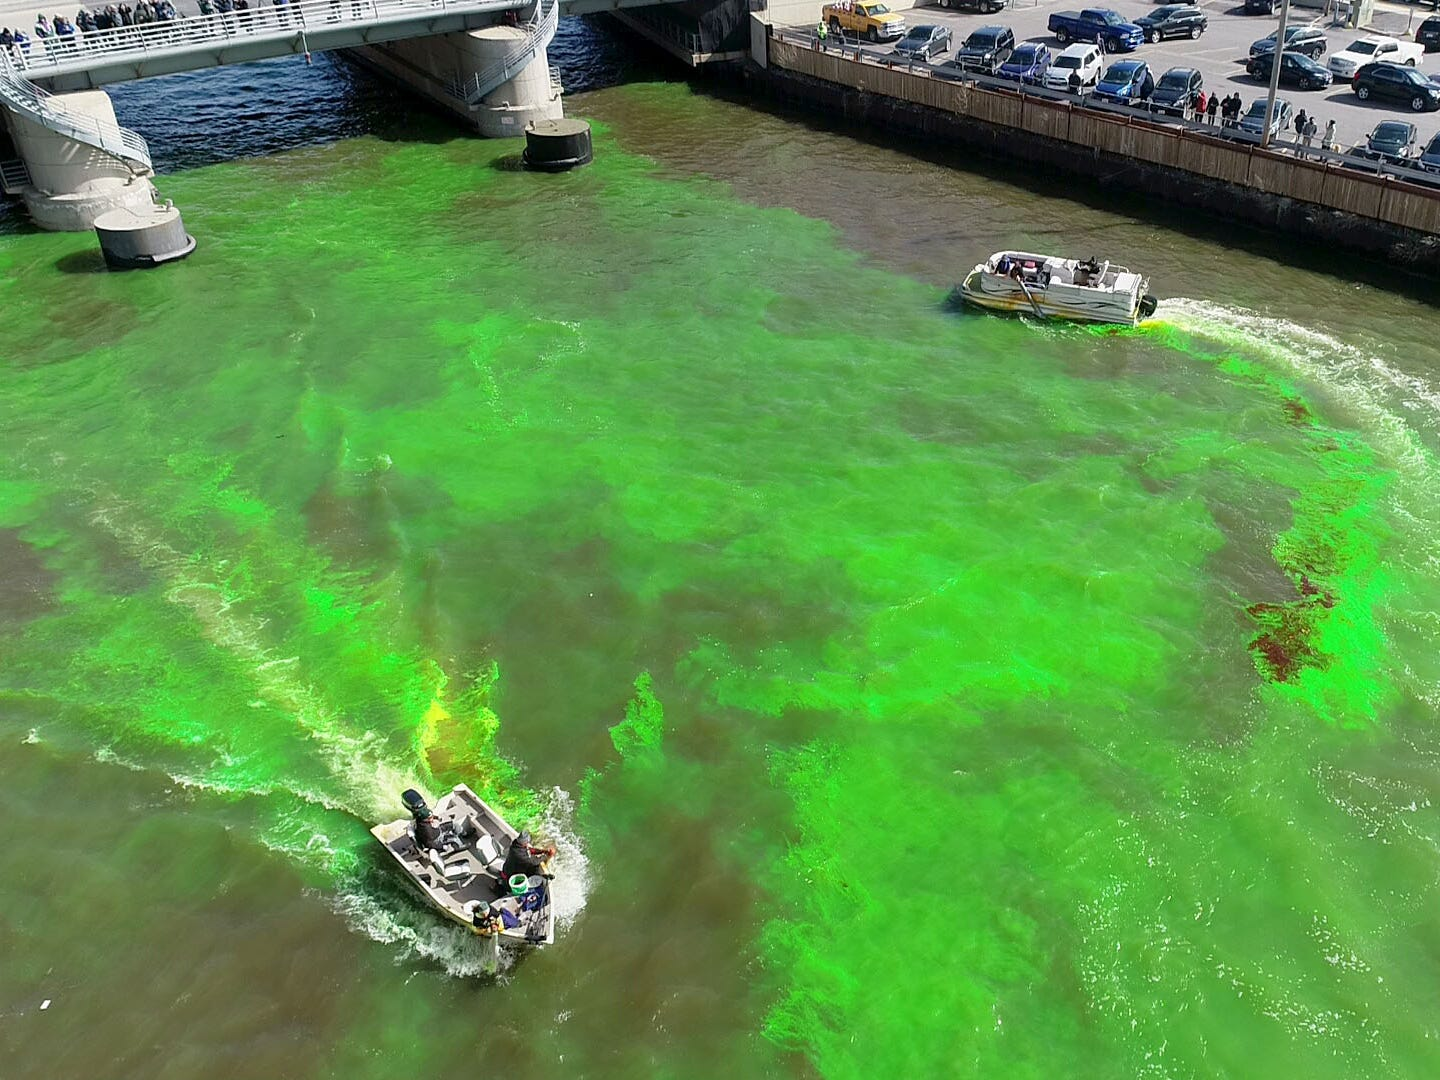 A boat dumps green dye while another swirls it around near the West  McKinley Avenue bridge. Milwaukee celebrated the start of the Milwaukee Bucks in the NBA Playoffs by dyeing the Milwaukee River green in Milwaukee on Friday, April 12, 2019. The Bucks partnered with the city and the state Department of Natural Resources to dye the river green and throw a kickoff party near Fiserv Forum.